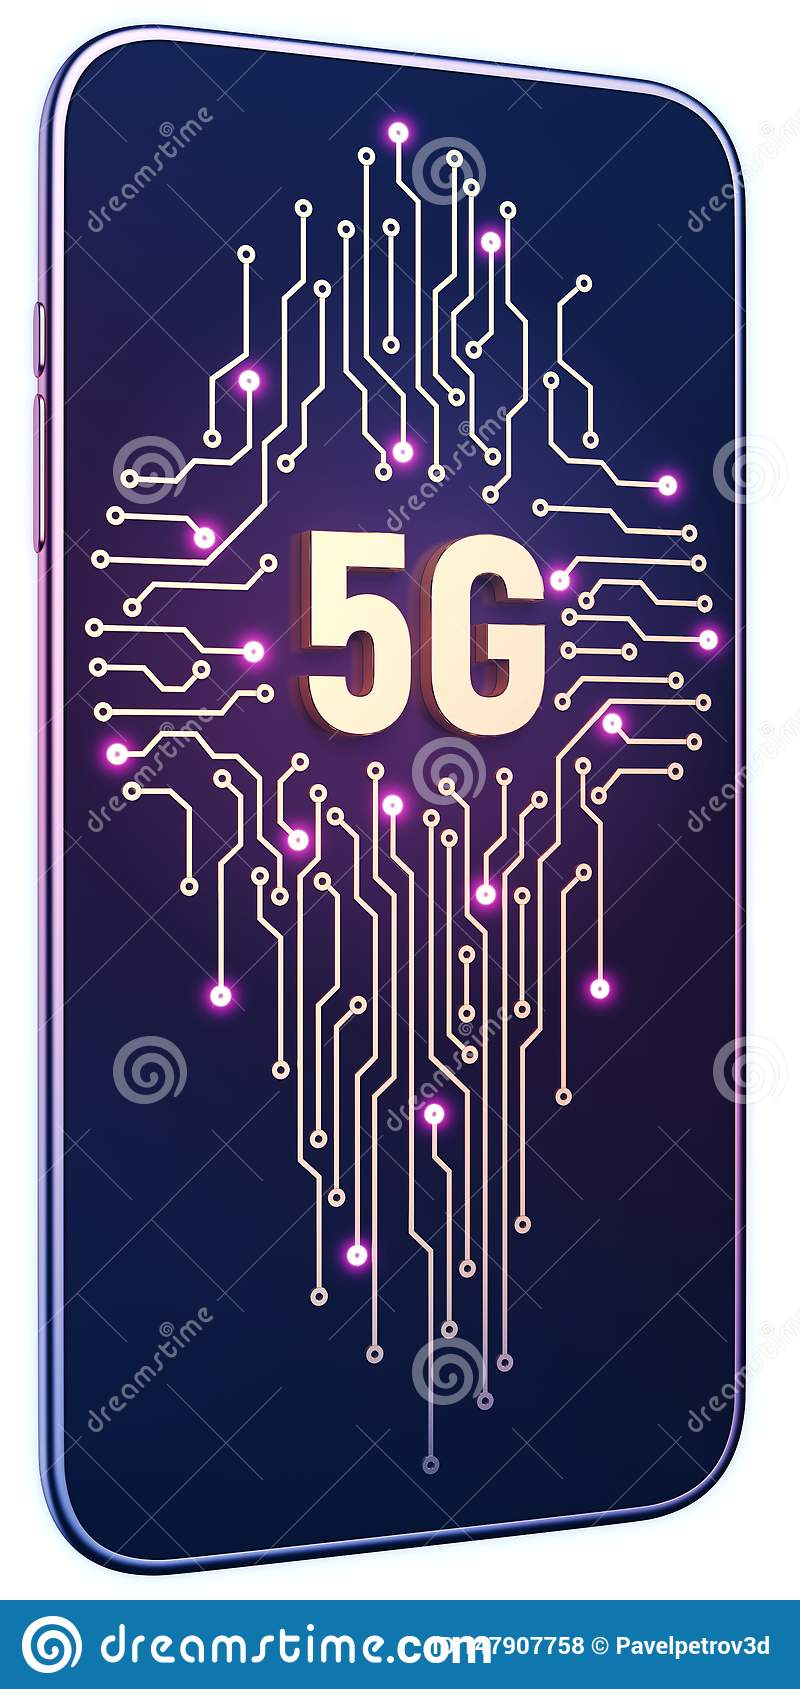 Smartphone white isolated background neon glow. Golden 5g symbol and circuit board on screen. 5g internet concept in technology 3d